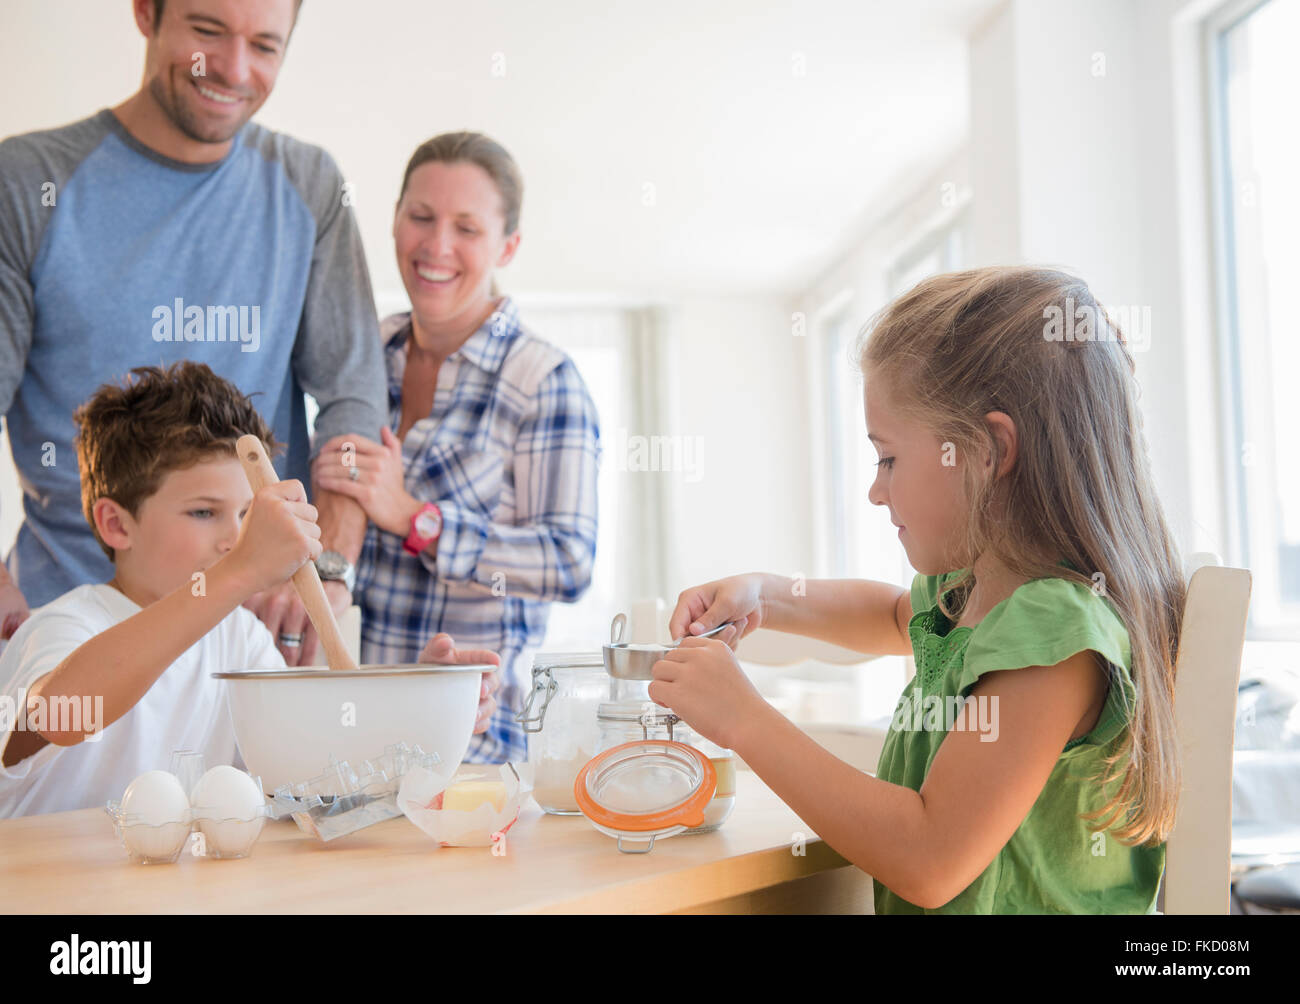 Family with two children (6-7, 8-9) preparing food - Stock Image